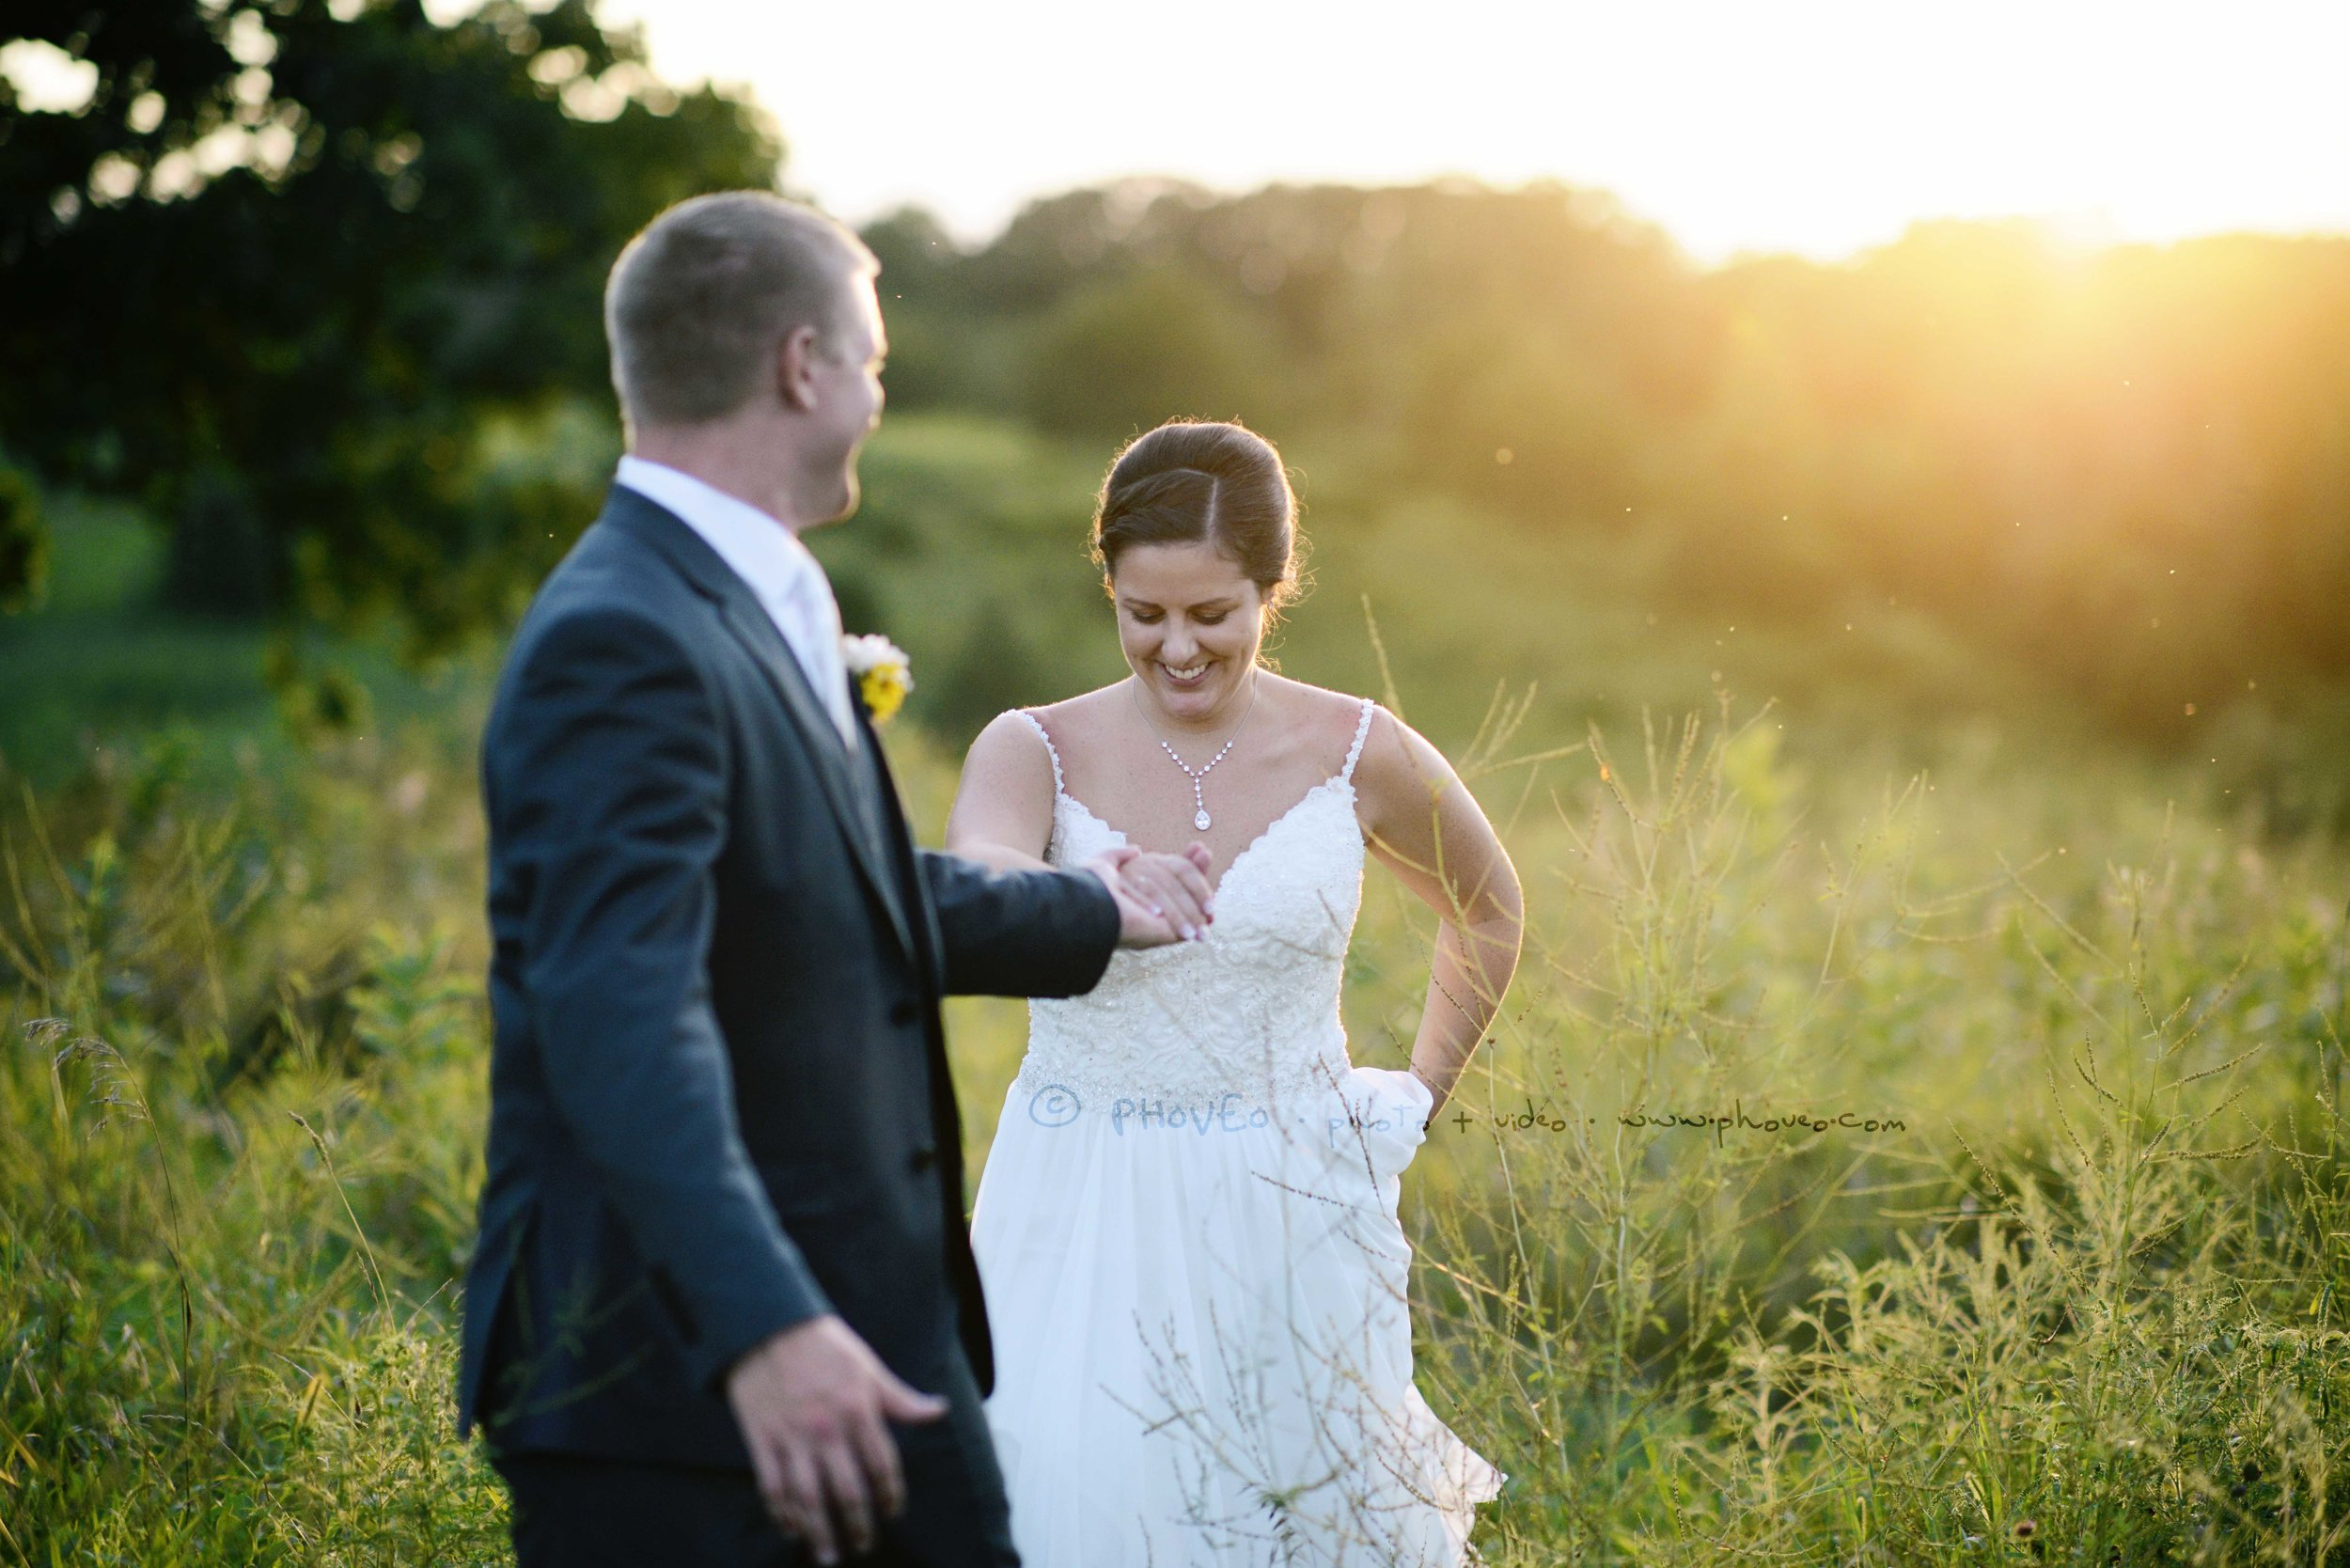 Kelly + Jeremy  |  Hastings, MN